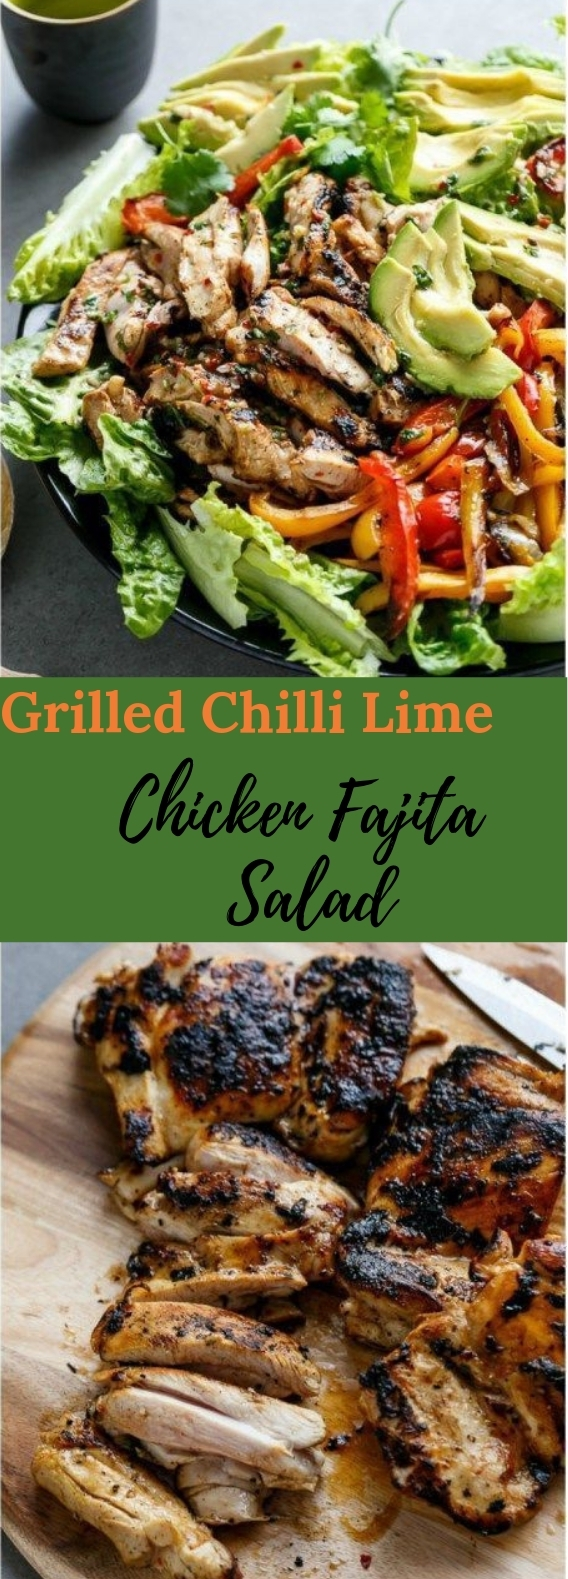 Grilled Chili Lime Chicken Fajita Salad #healthy #salad